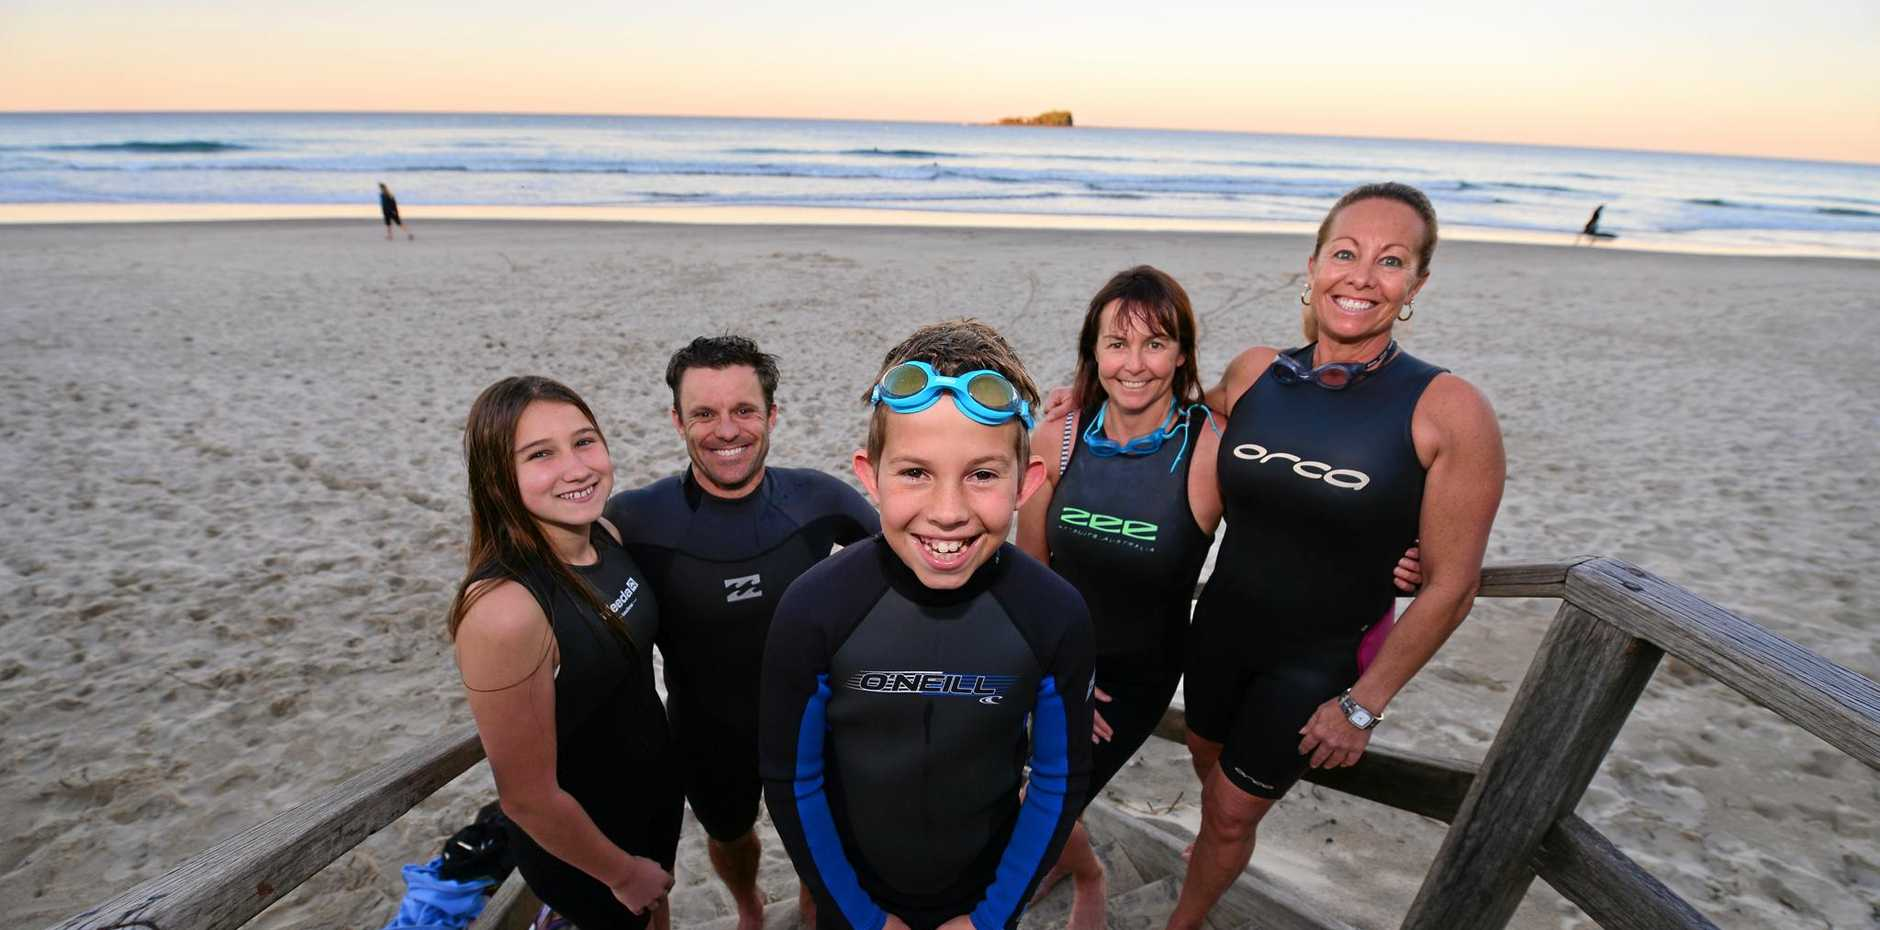 COMMITTED: Turtles team members line up for the 2015 Island Charity Swim: Nathan Jonns (front) with (from left) Dali Baldock, Todd McSwan, Andrea Fesselet and Kim Hatton.